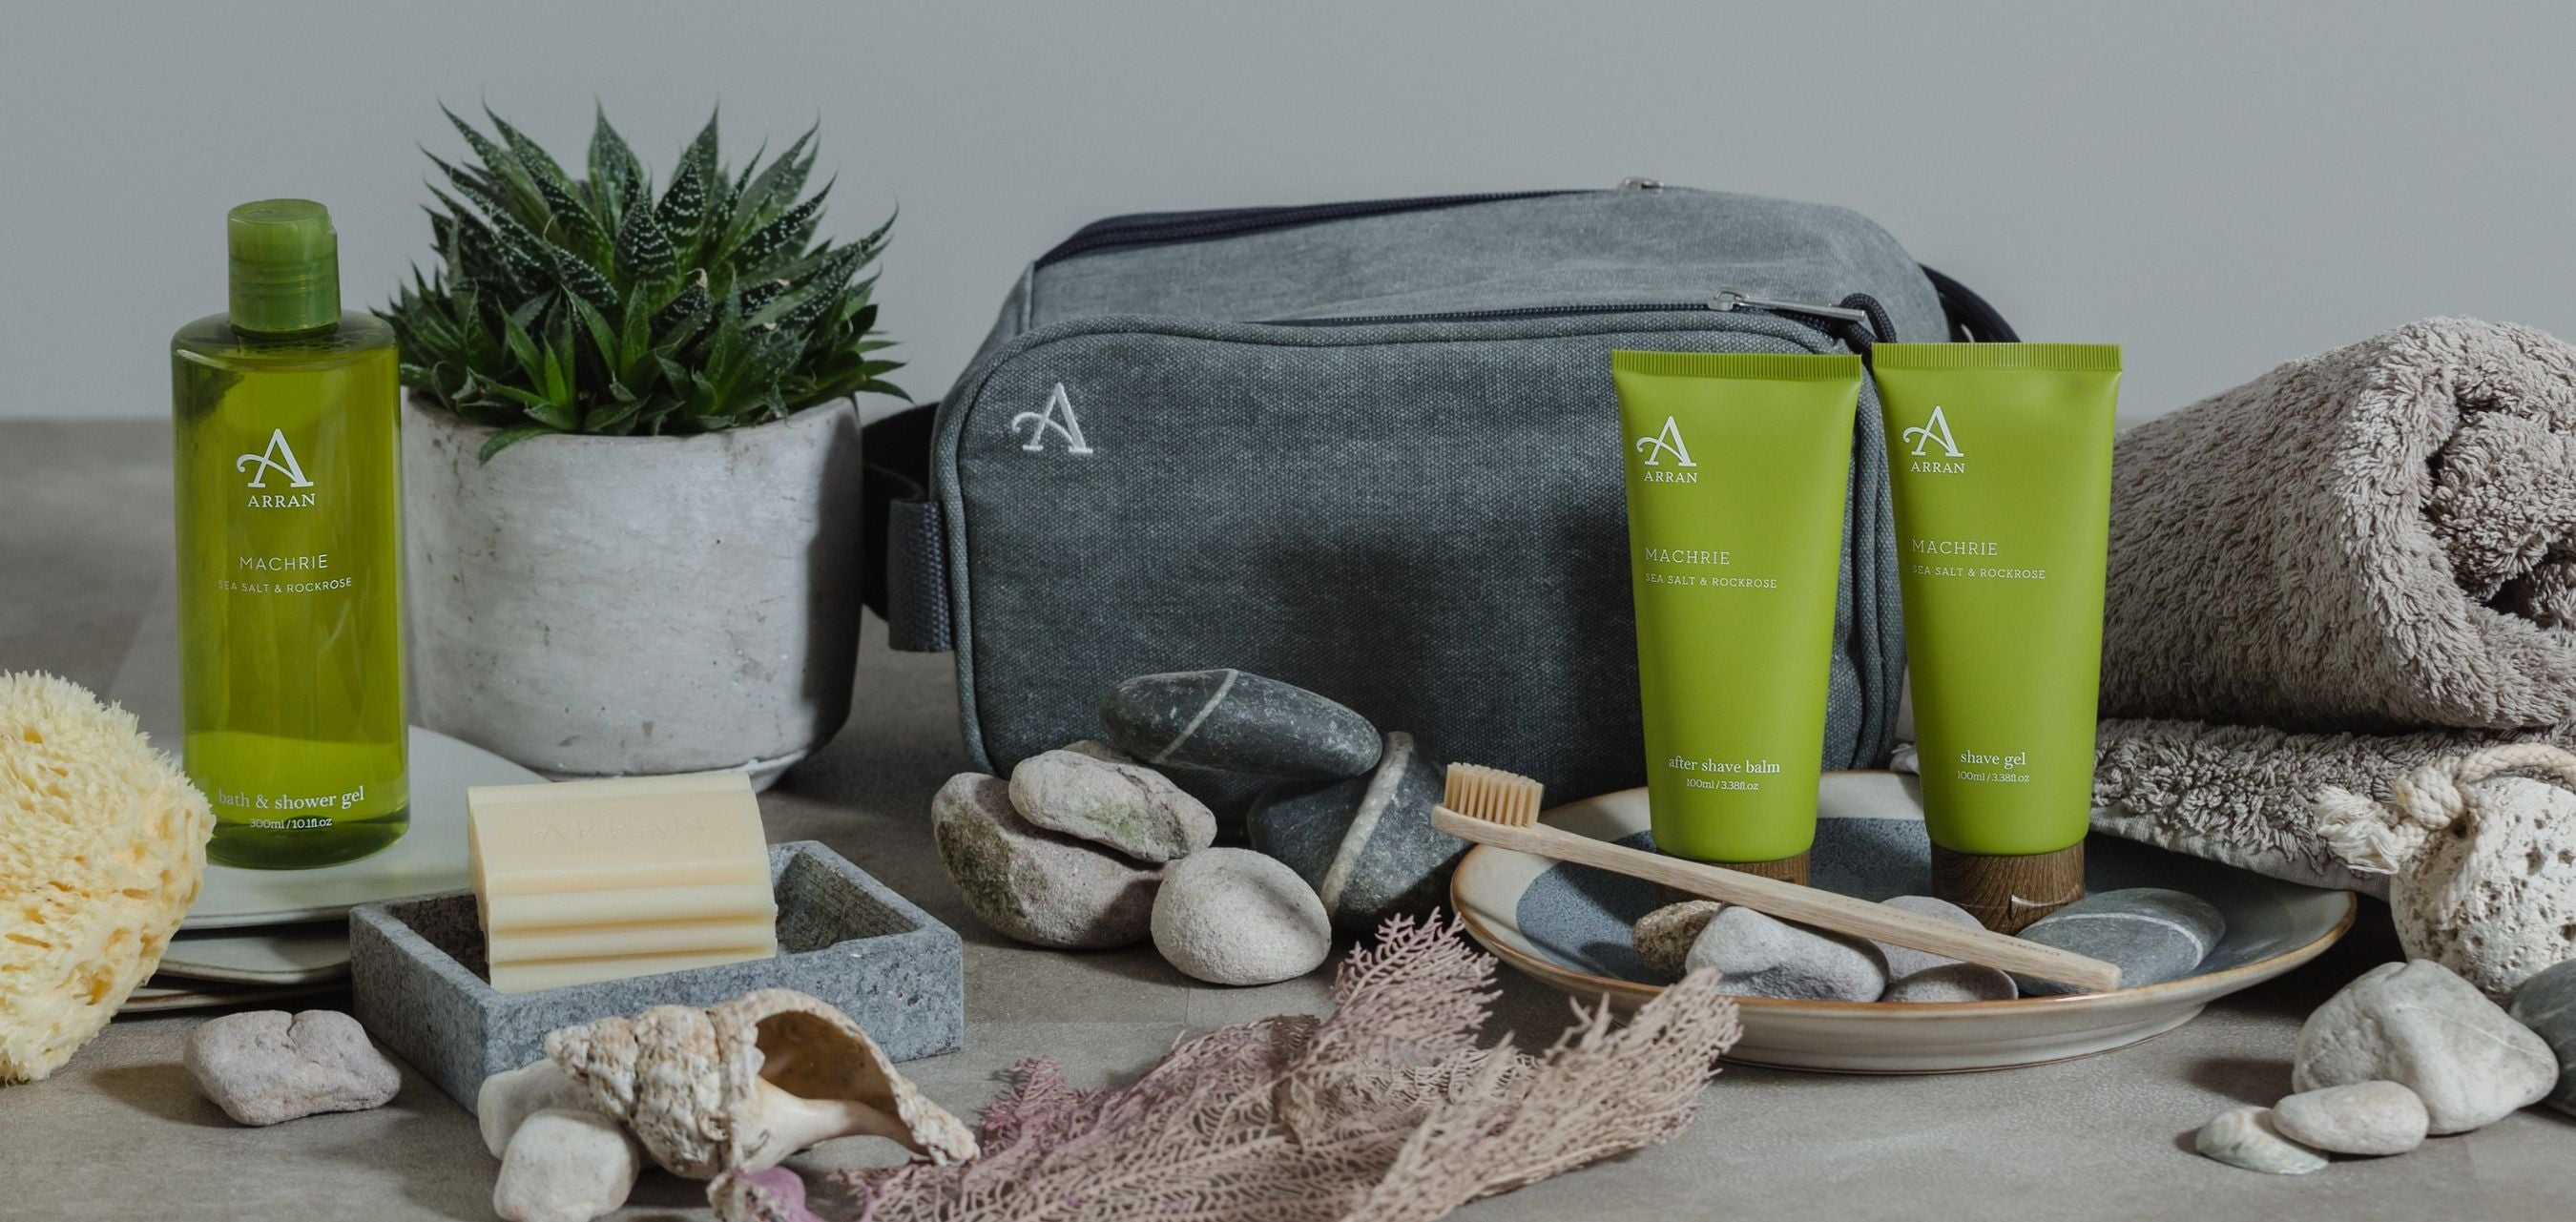 Grey canvas bag with green shower gel bottle, shave gel and after shave balm, surrounded by grey pebbles and green house plant.